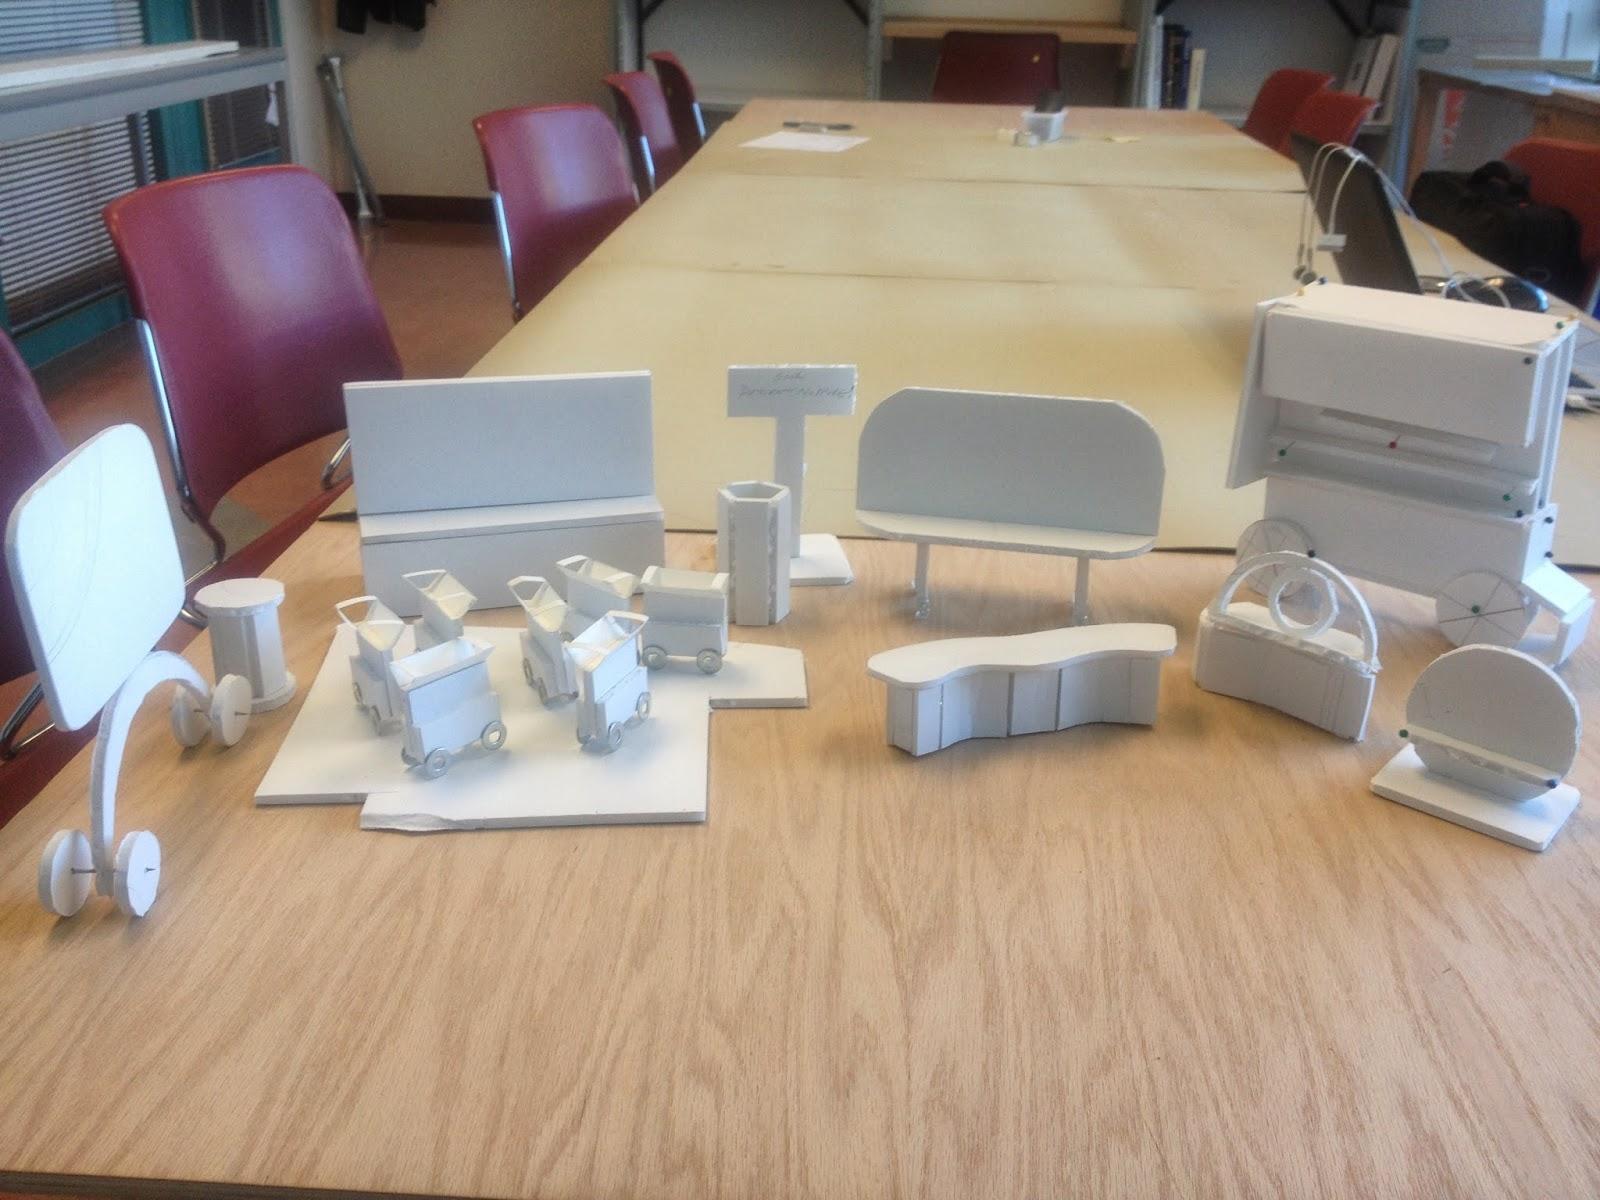 A number of foam core model mockups are organized on a table and the image is taken at a waist height angle.